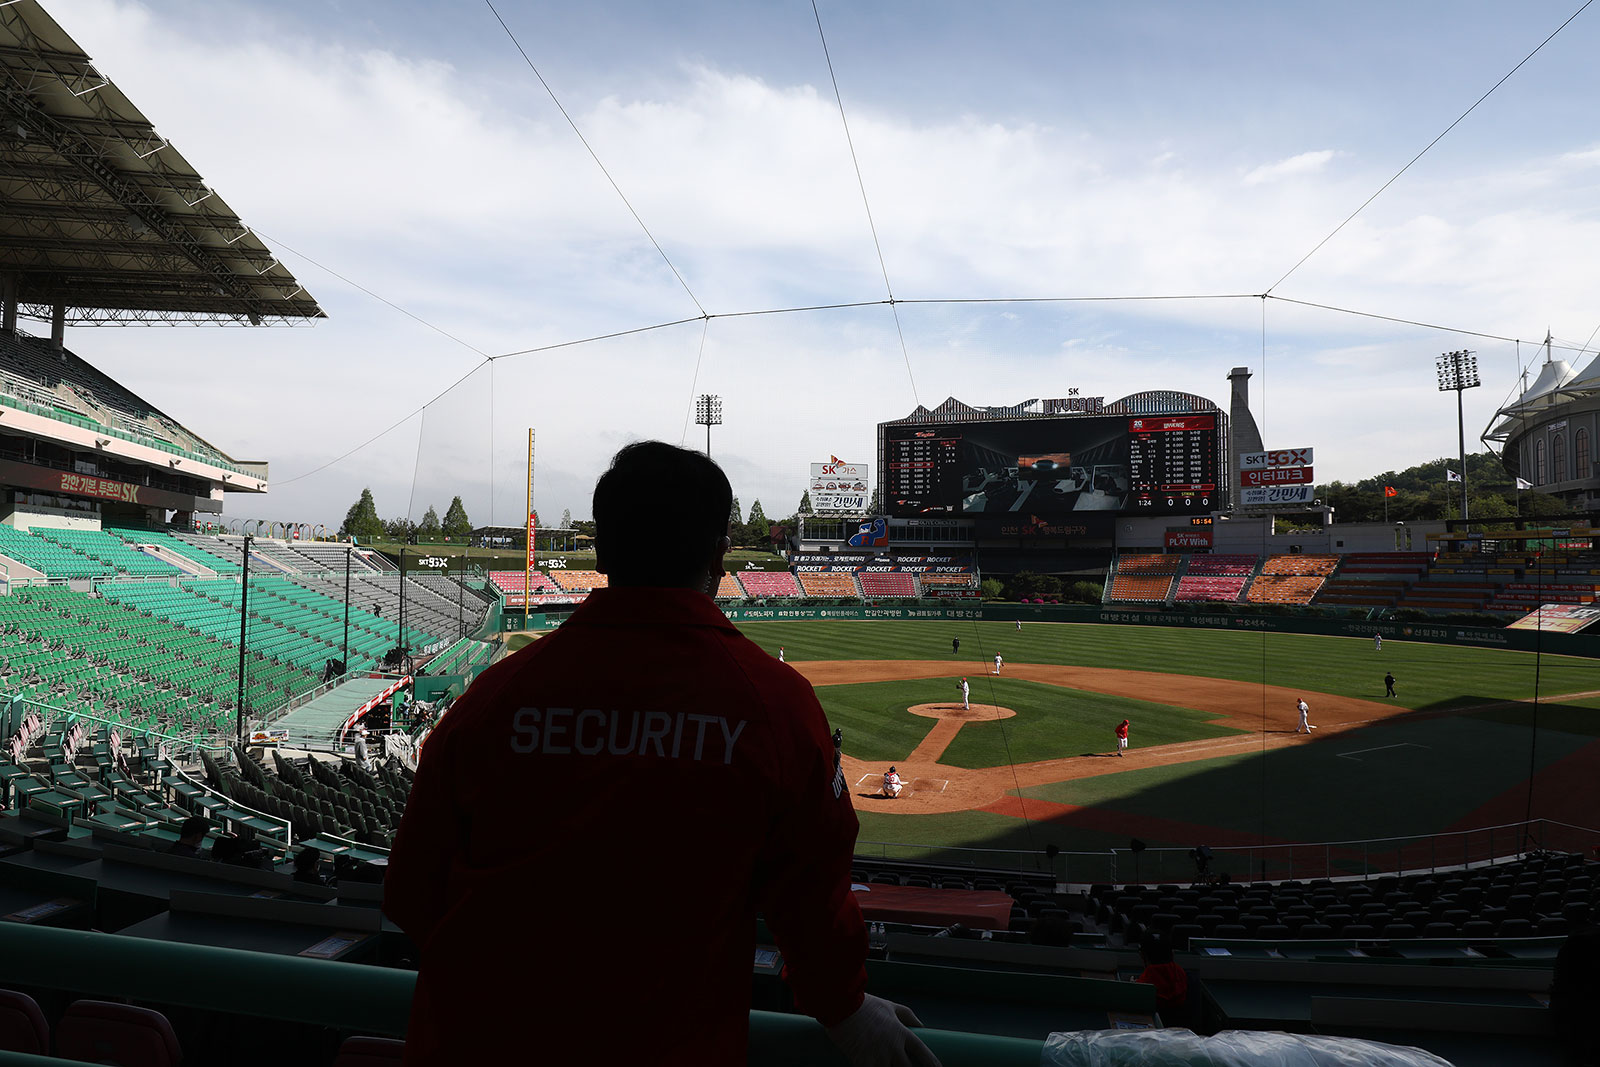 A security guard watches a KBO baseball game between the SK Wyverns and Hanwha Eagles in Incheon, South Korea, on May 5.